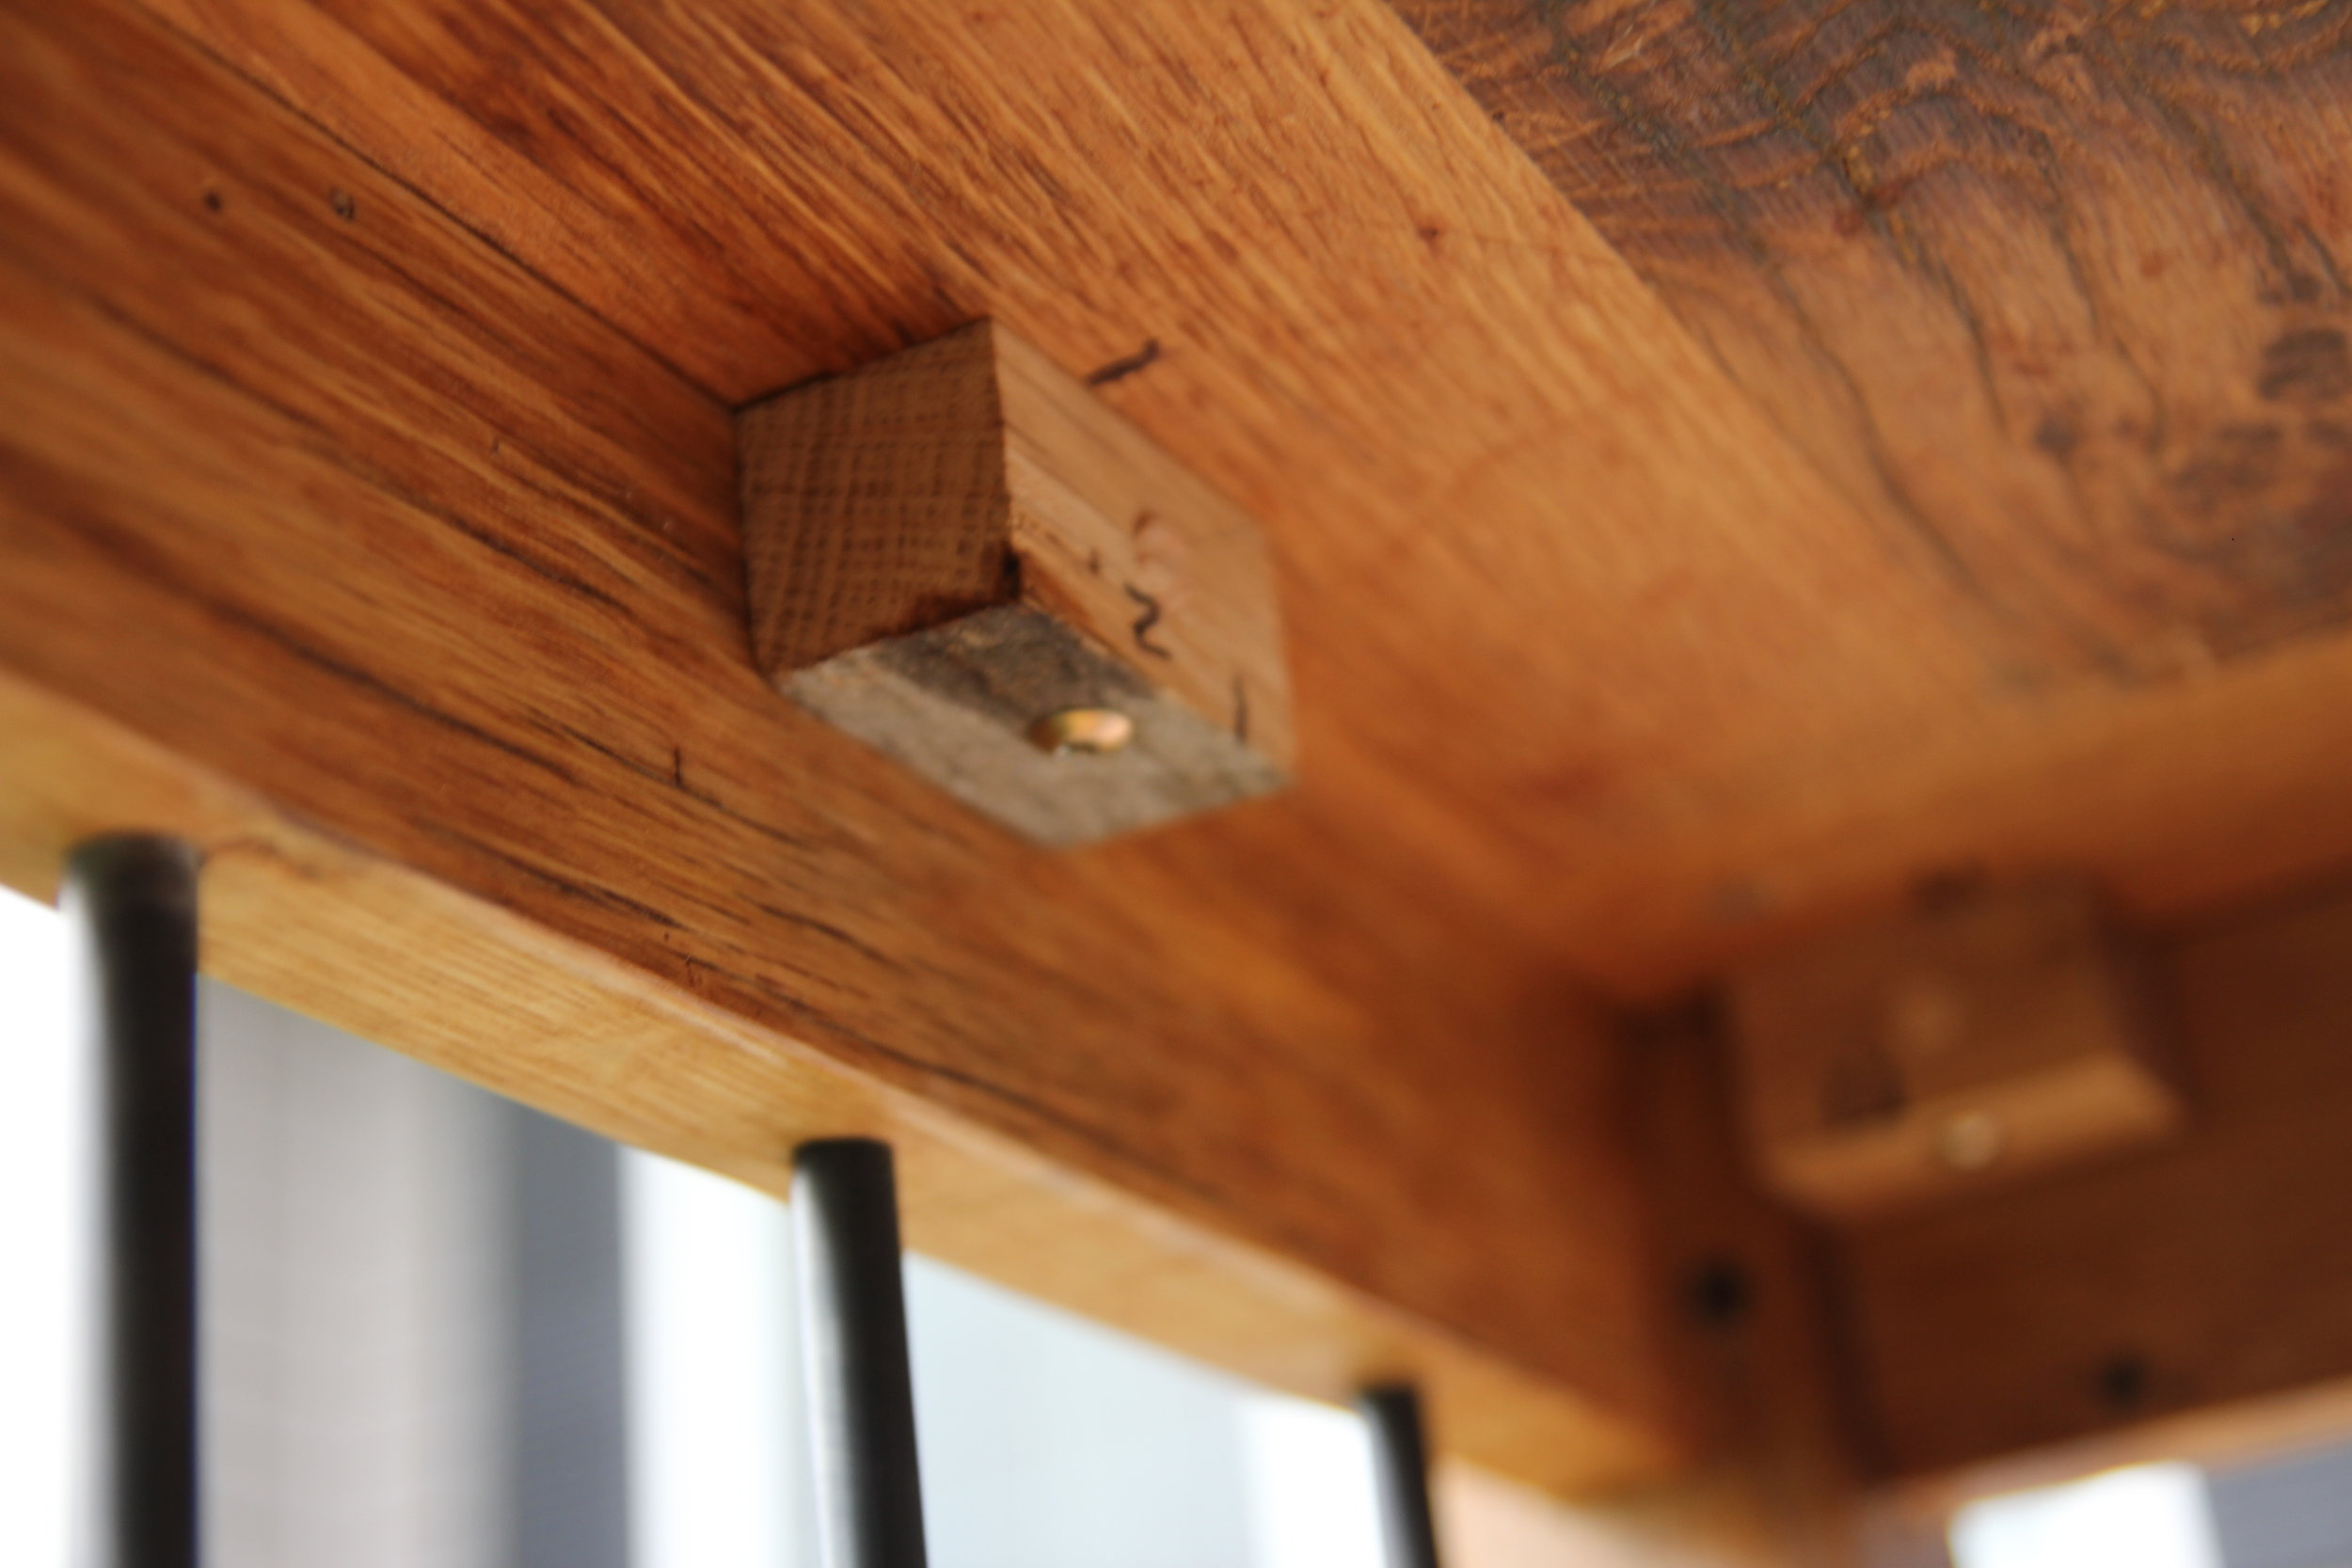 Floating Table Top Mounts to prevent cracking and warping.